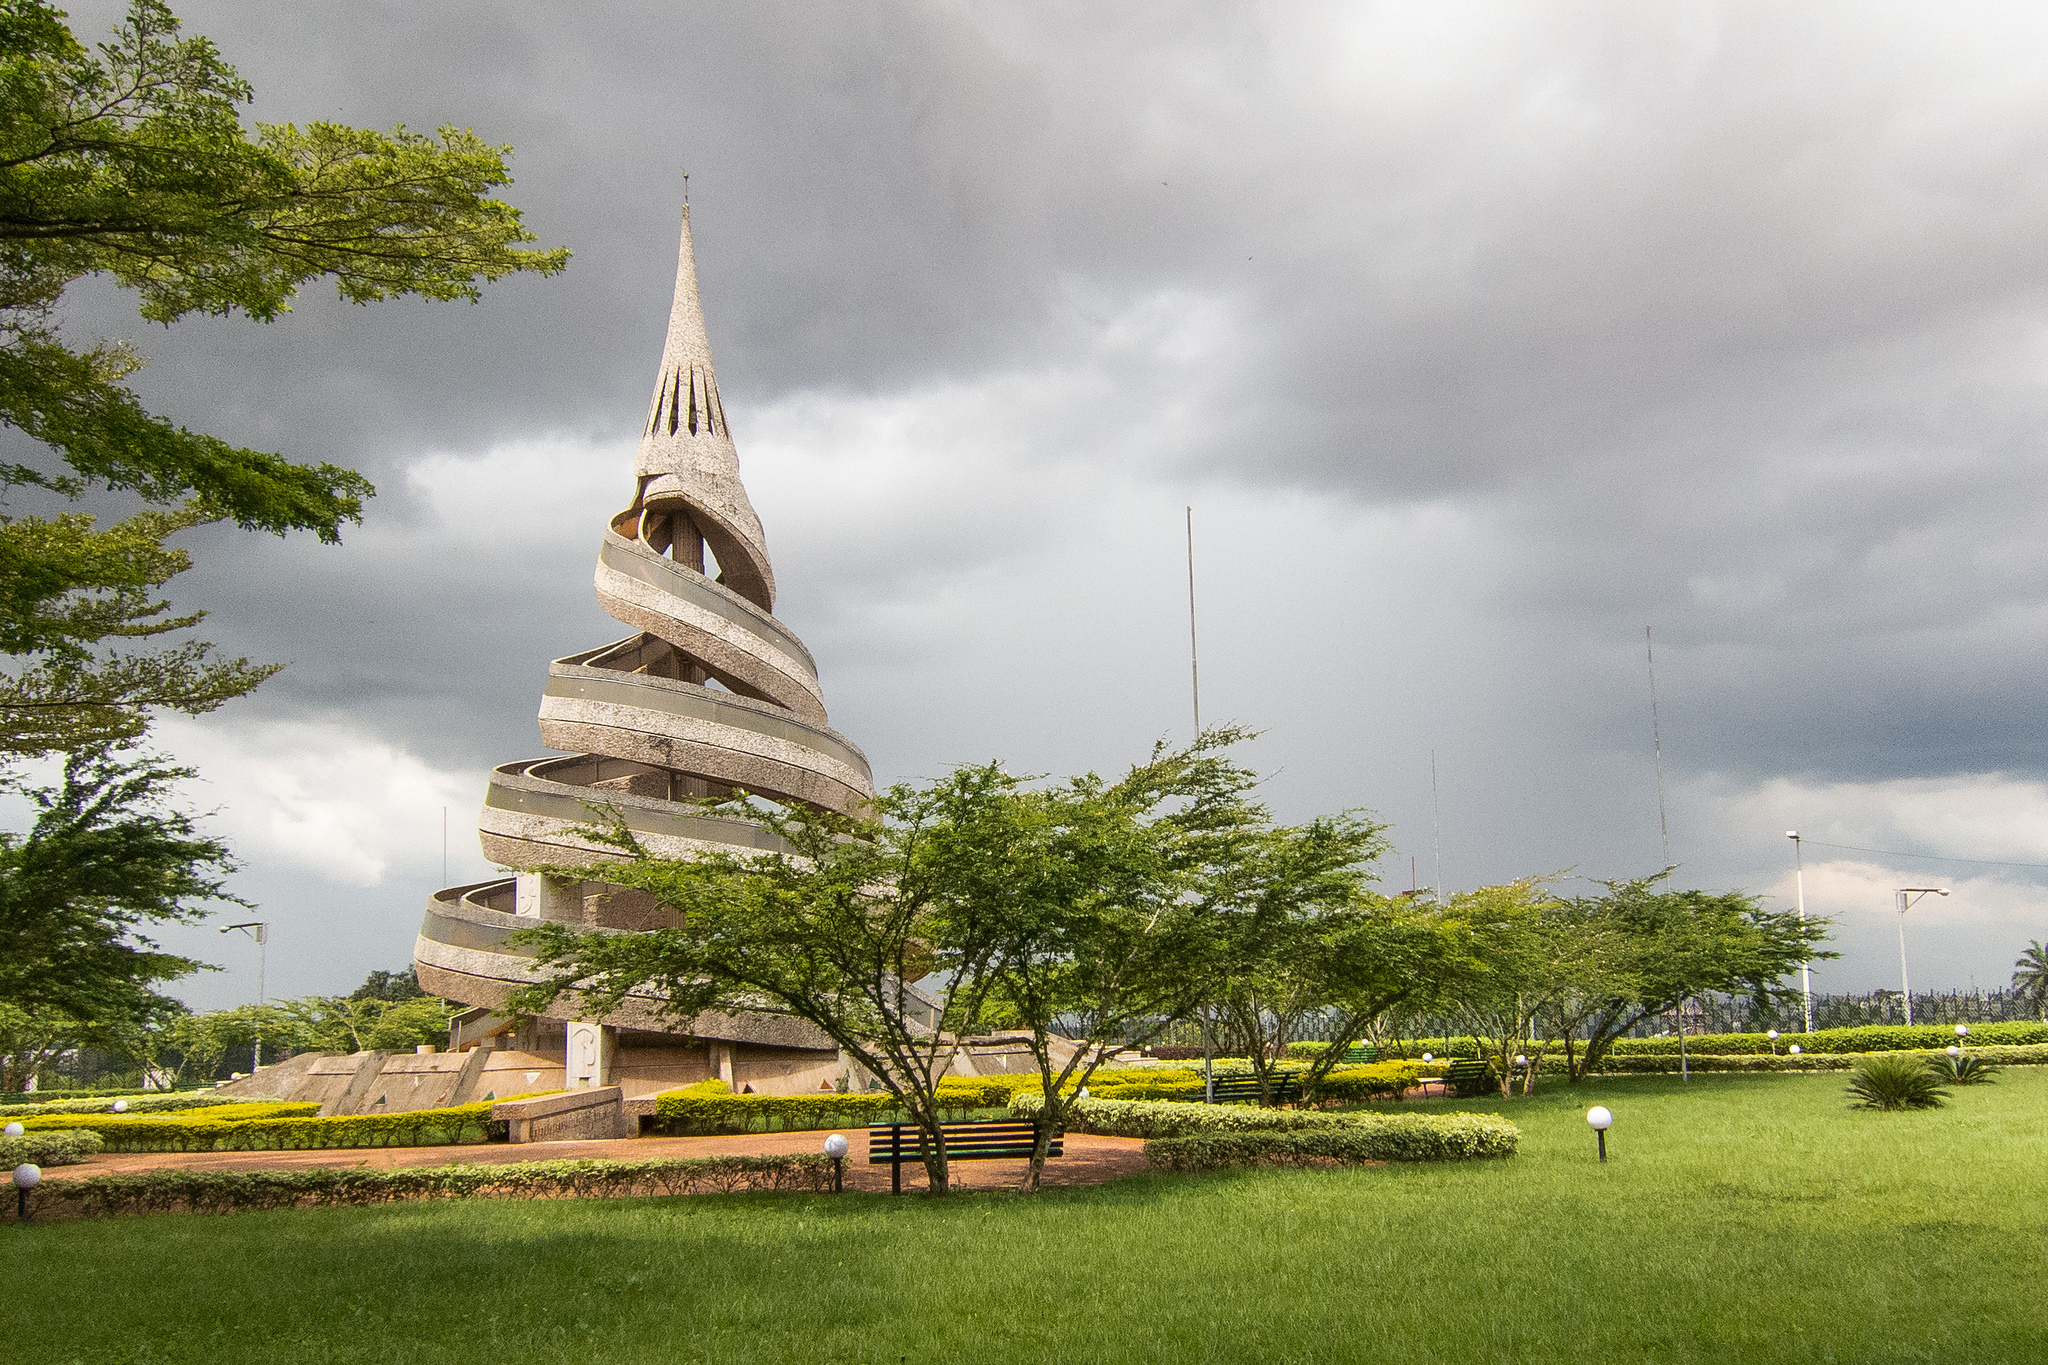 Reunification Monument - Yaoundé surrounded by grass and trees